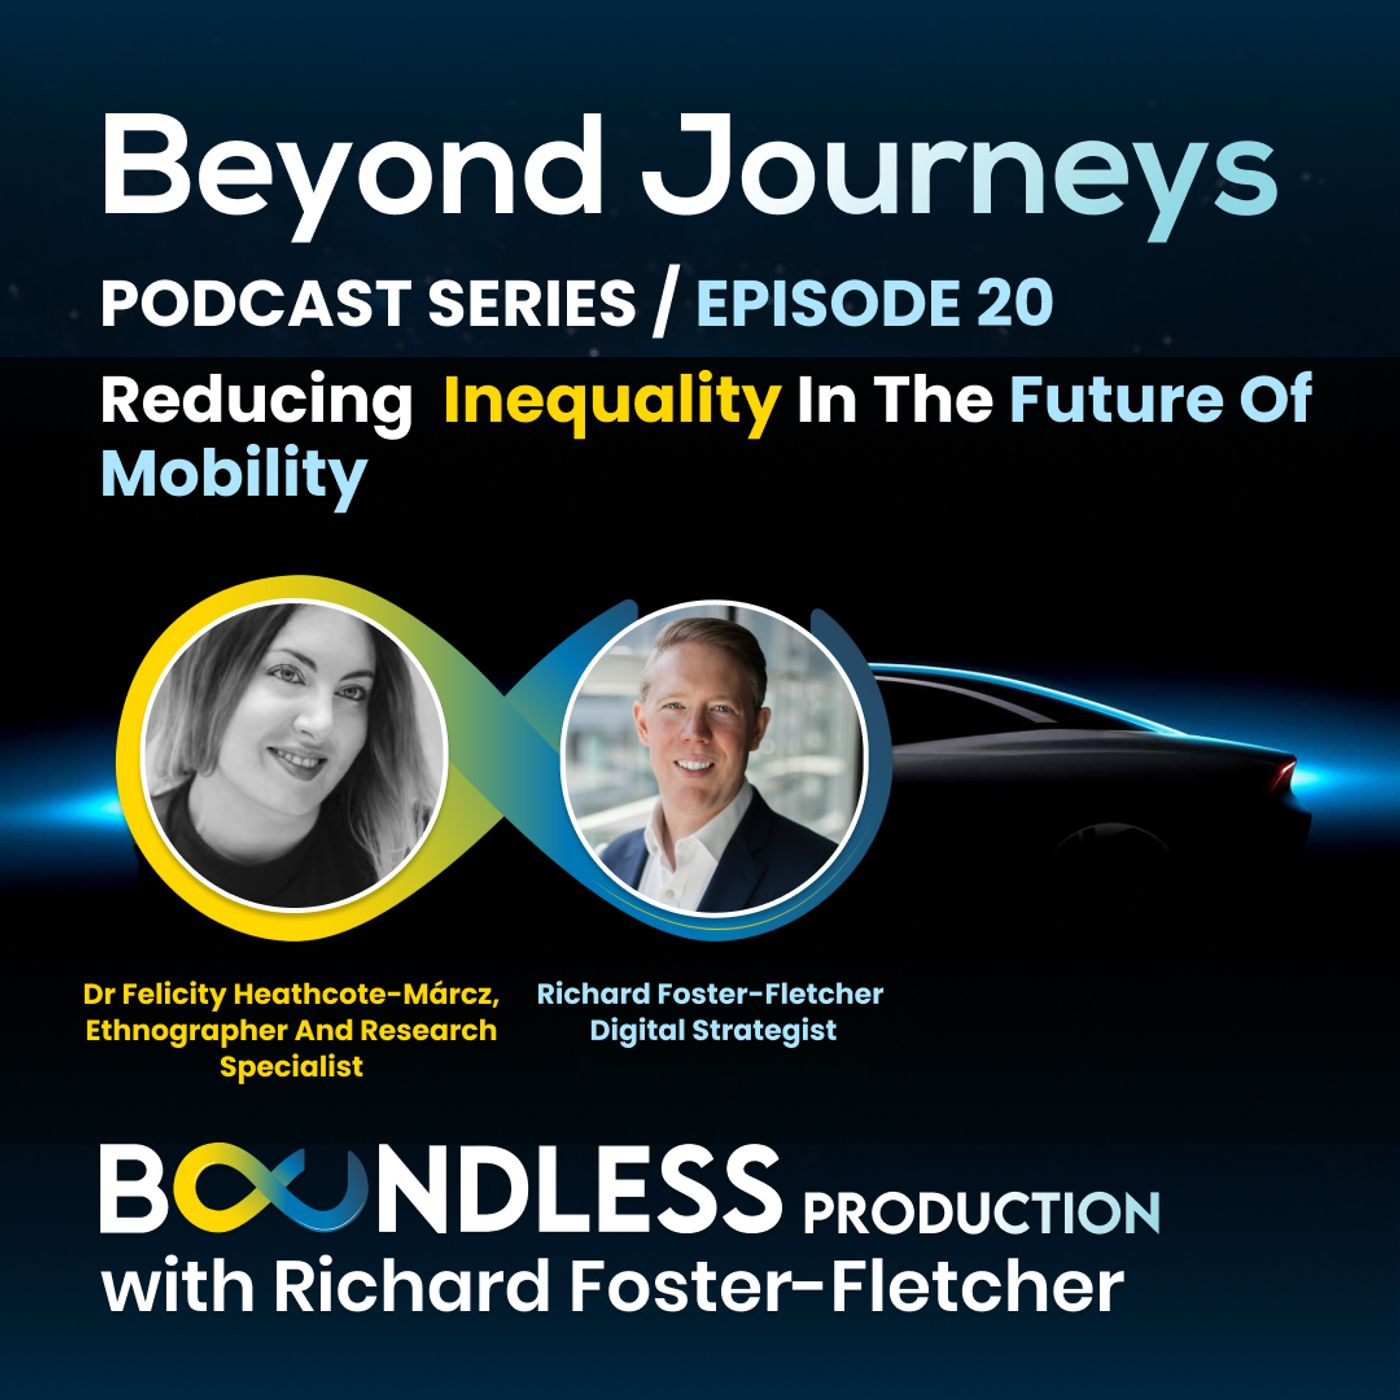 EP20 Beyond Journeys: Dr Felicity Heathcote-Márcz, Cyborg Ethnographer – Reducing inequality in the future of mobility